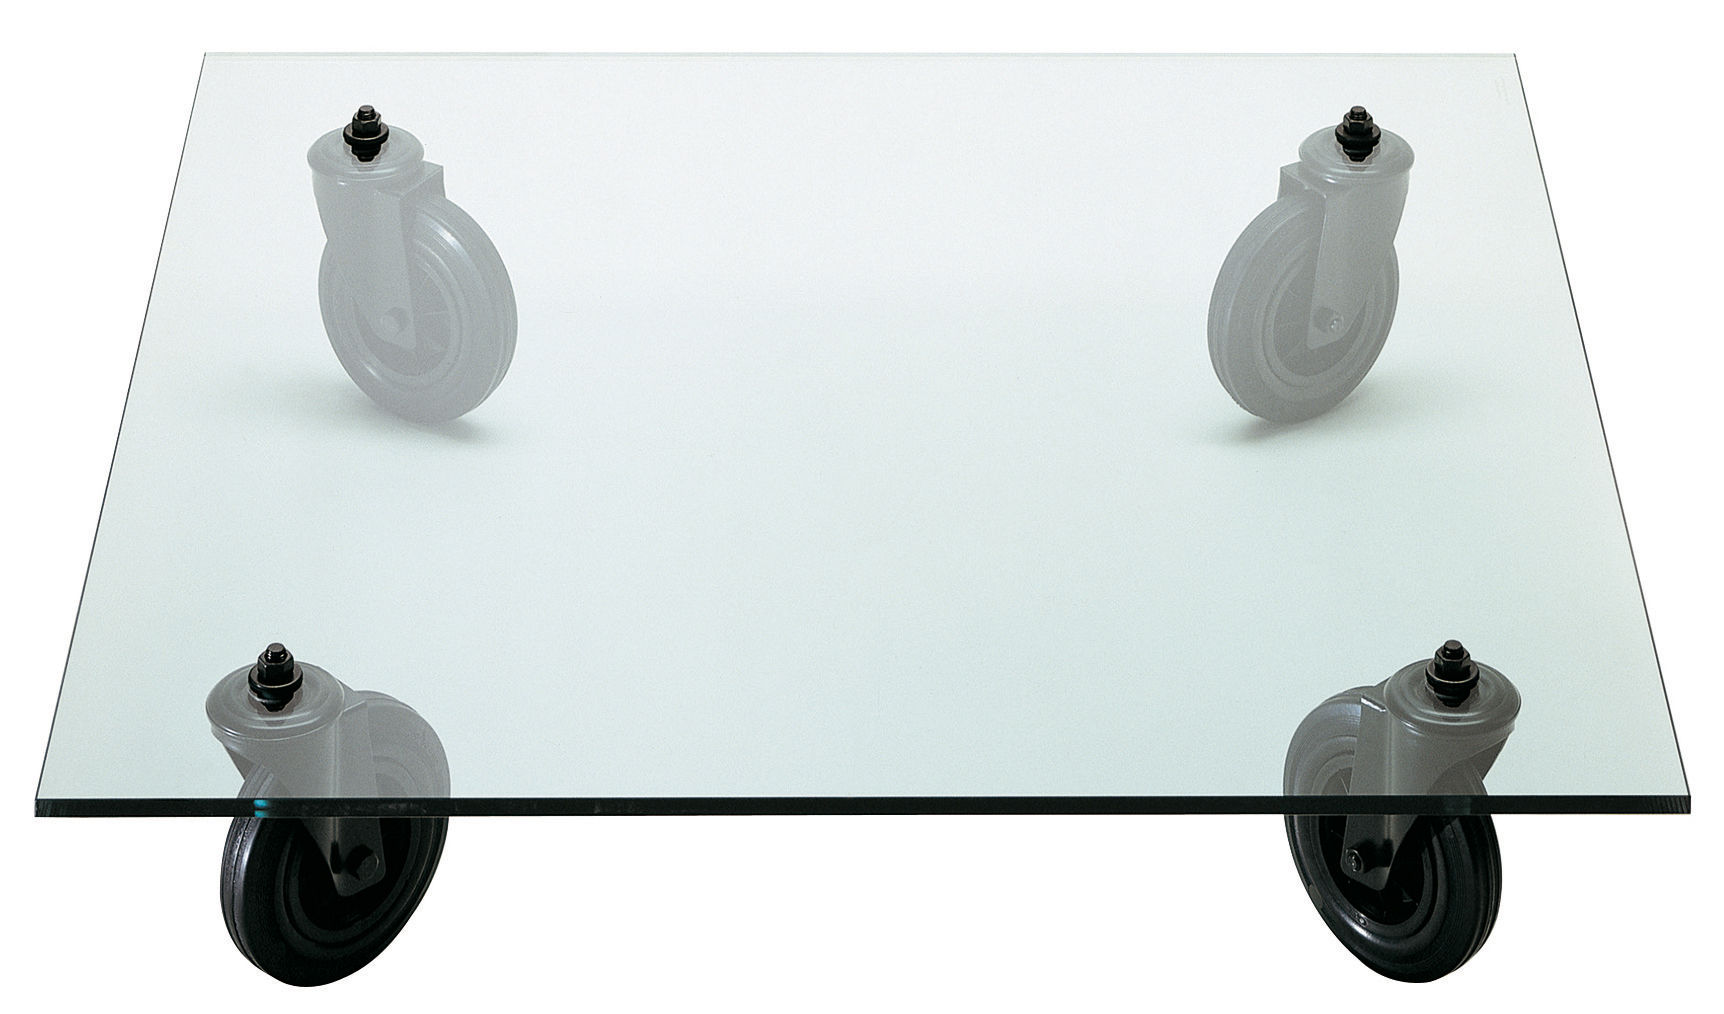 Gae aulenti coffee table 110 x 110 cm by fontana arte - Tables basse de salon ...